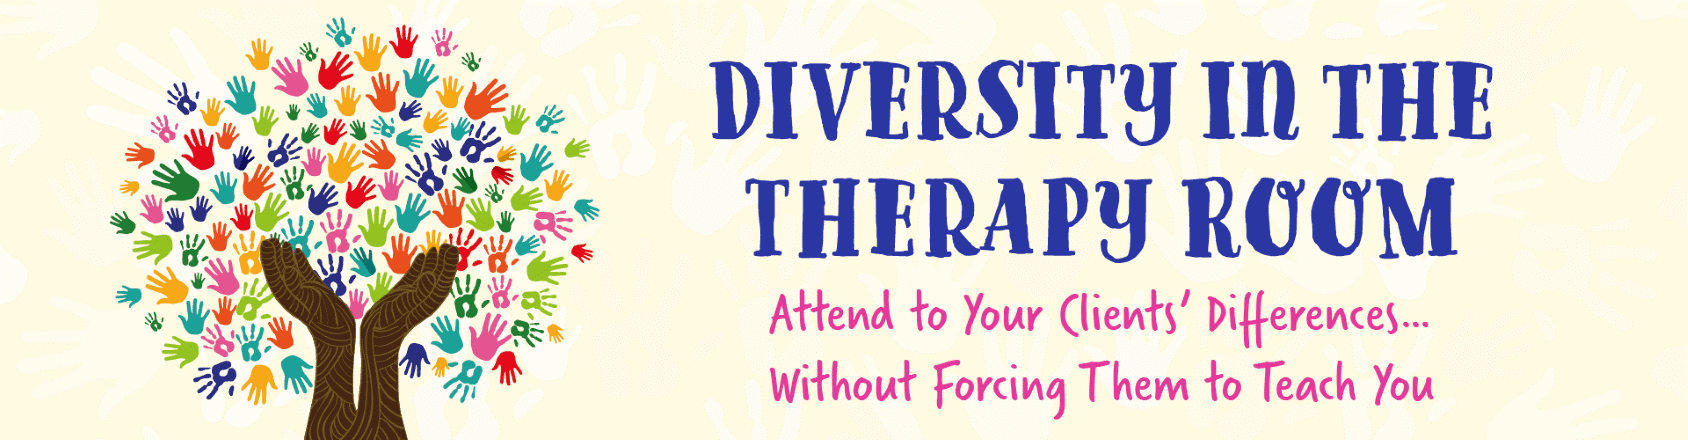 Diversity in the Therapy Room: Attend to Your Clients' Differences…Without Forcing Them to Teach You